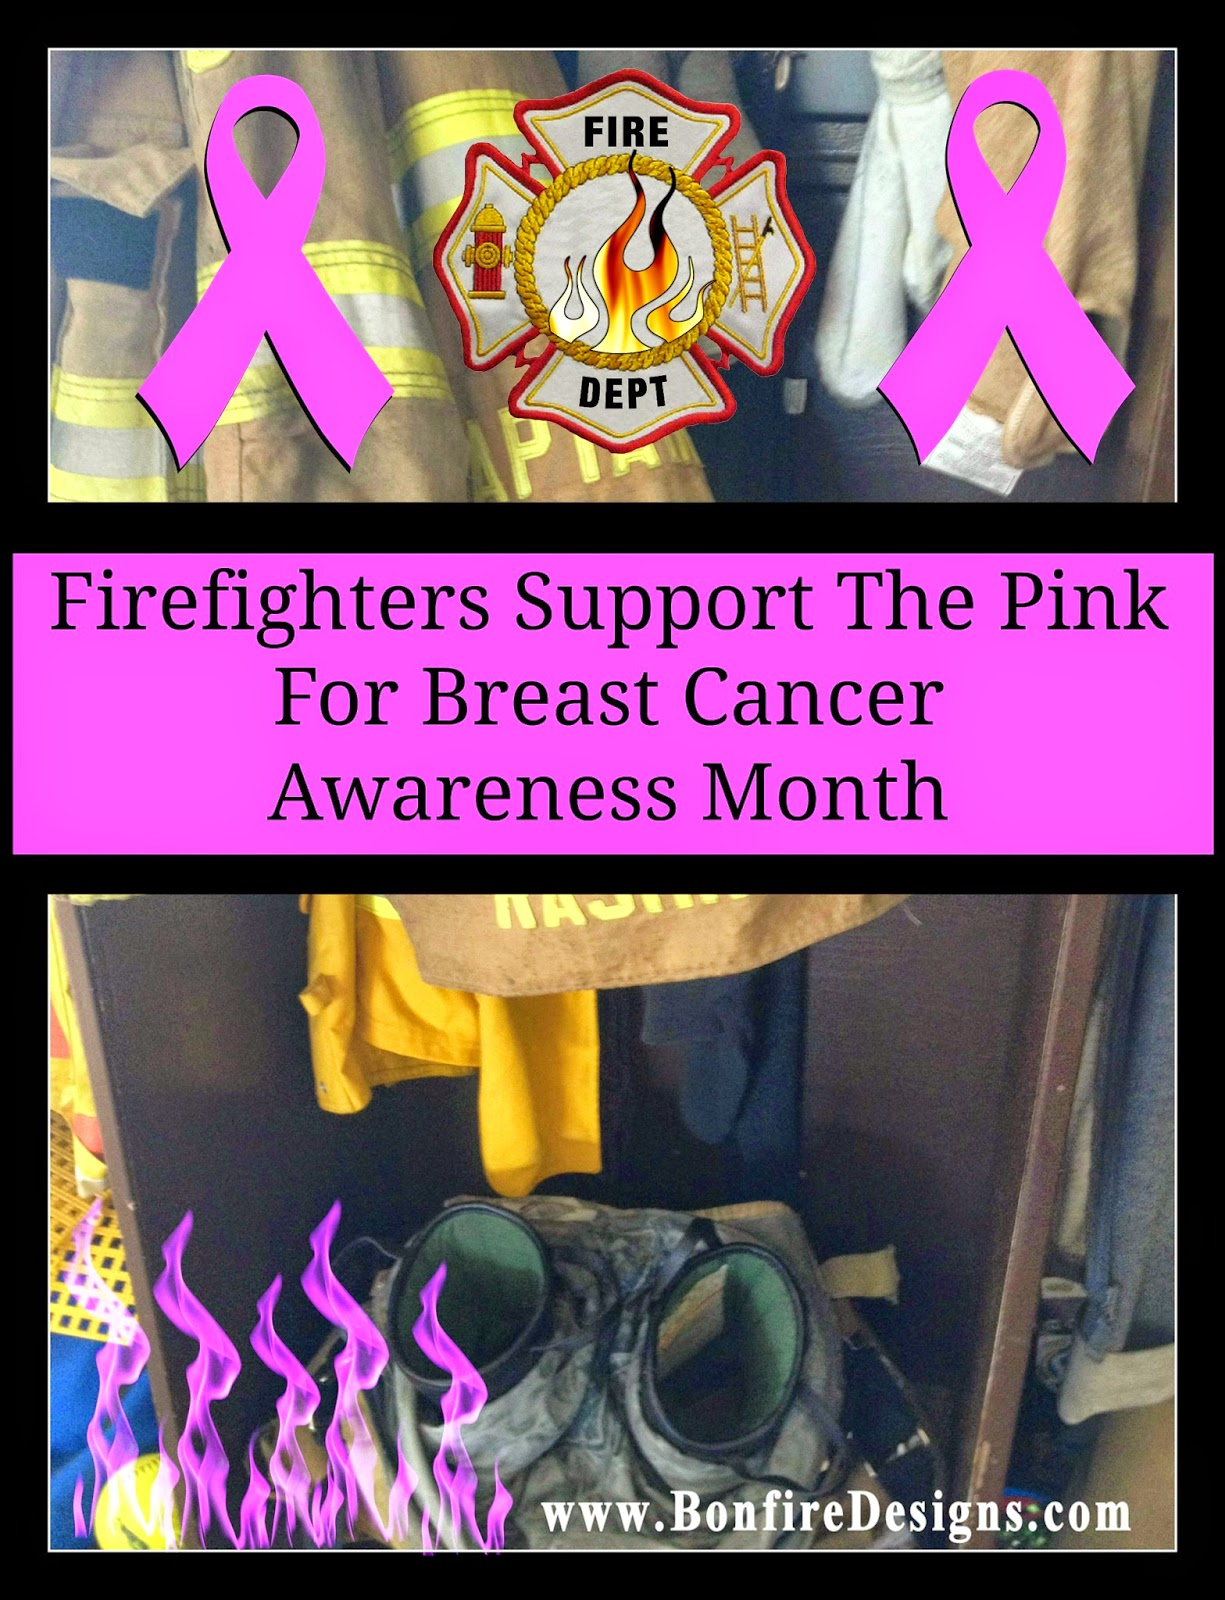 Firefighters Go Pink To Support Breast Cancer Awareness Month